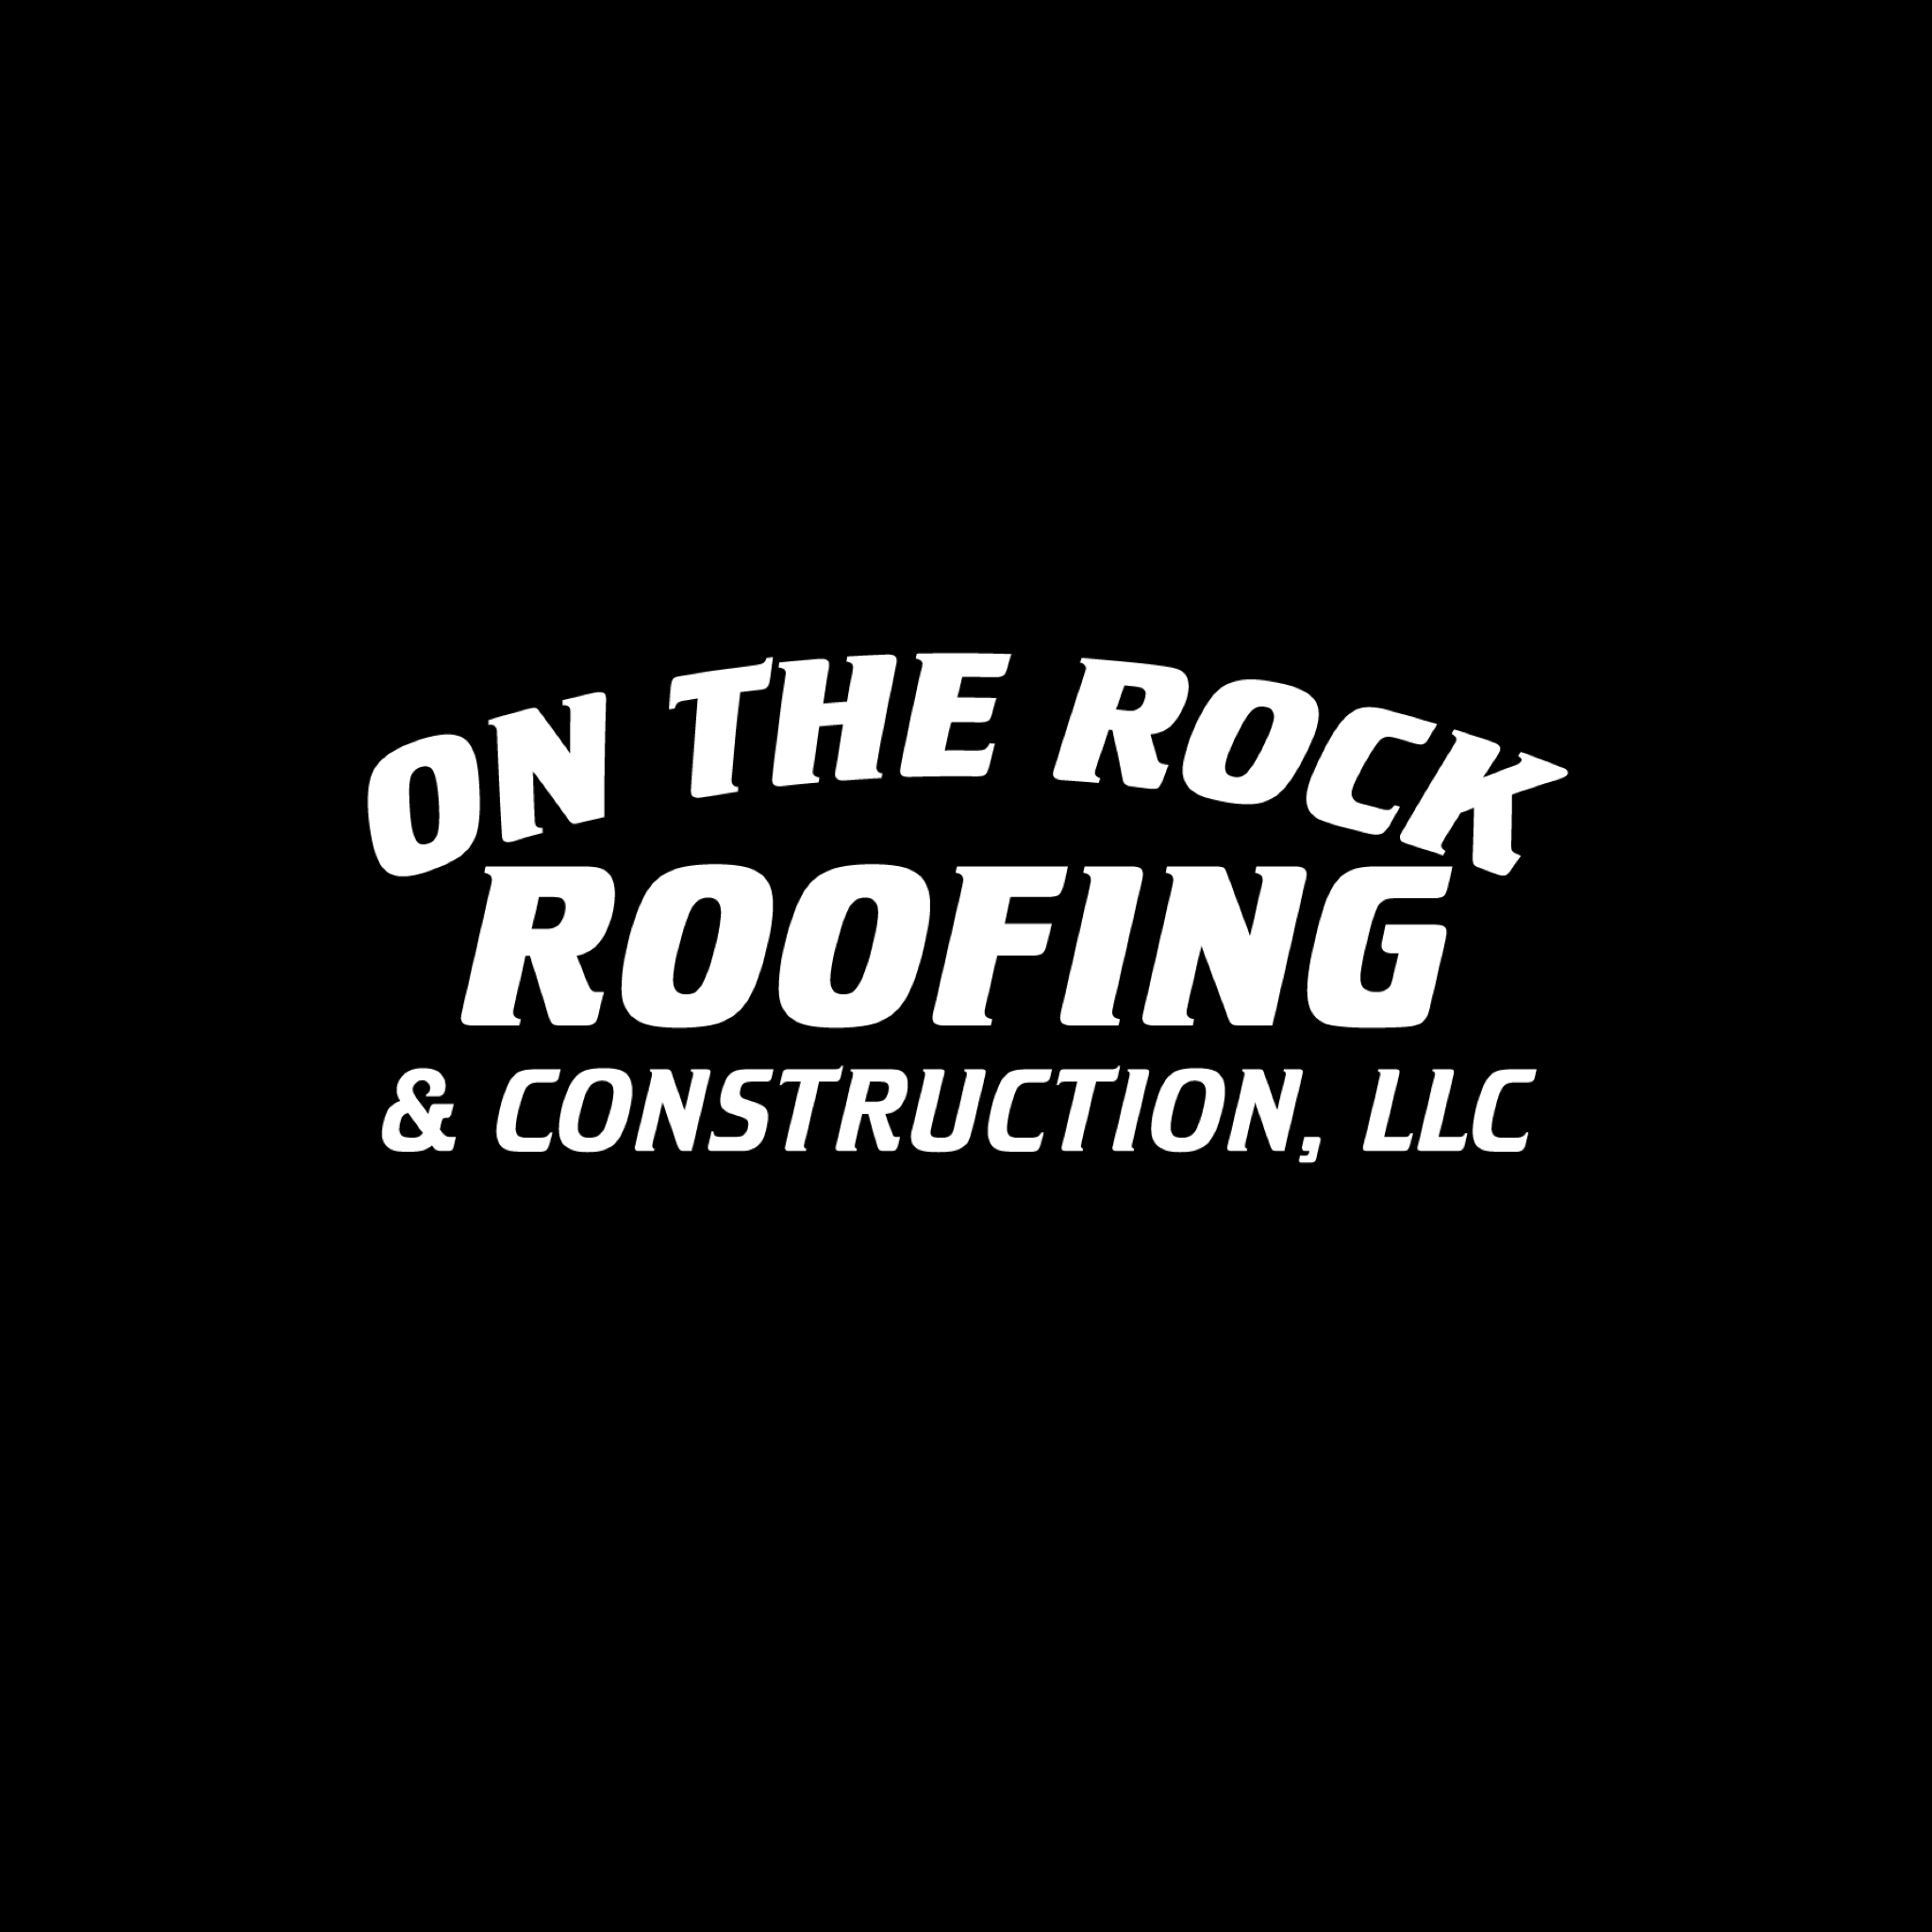 On The Rock Roofing